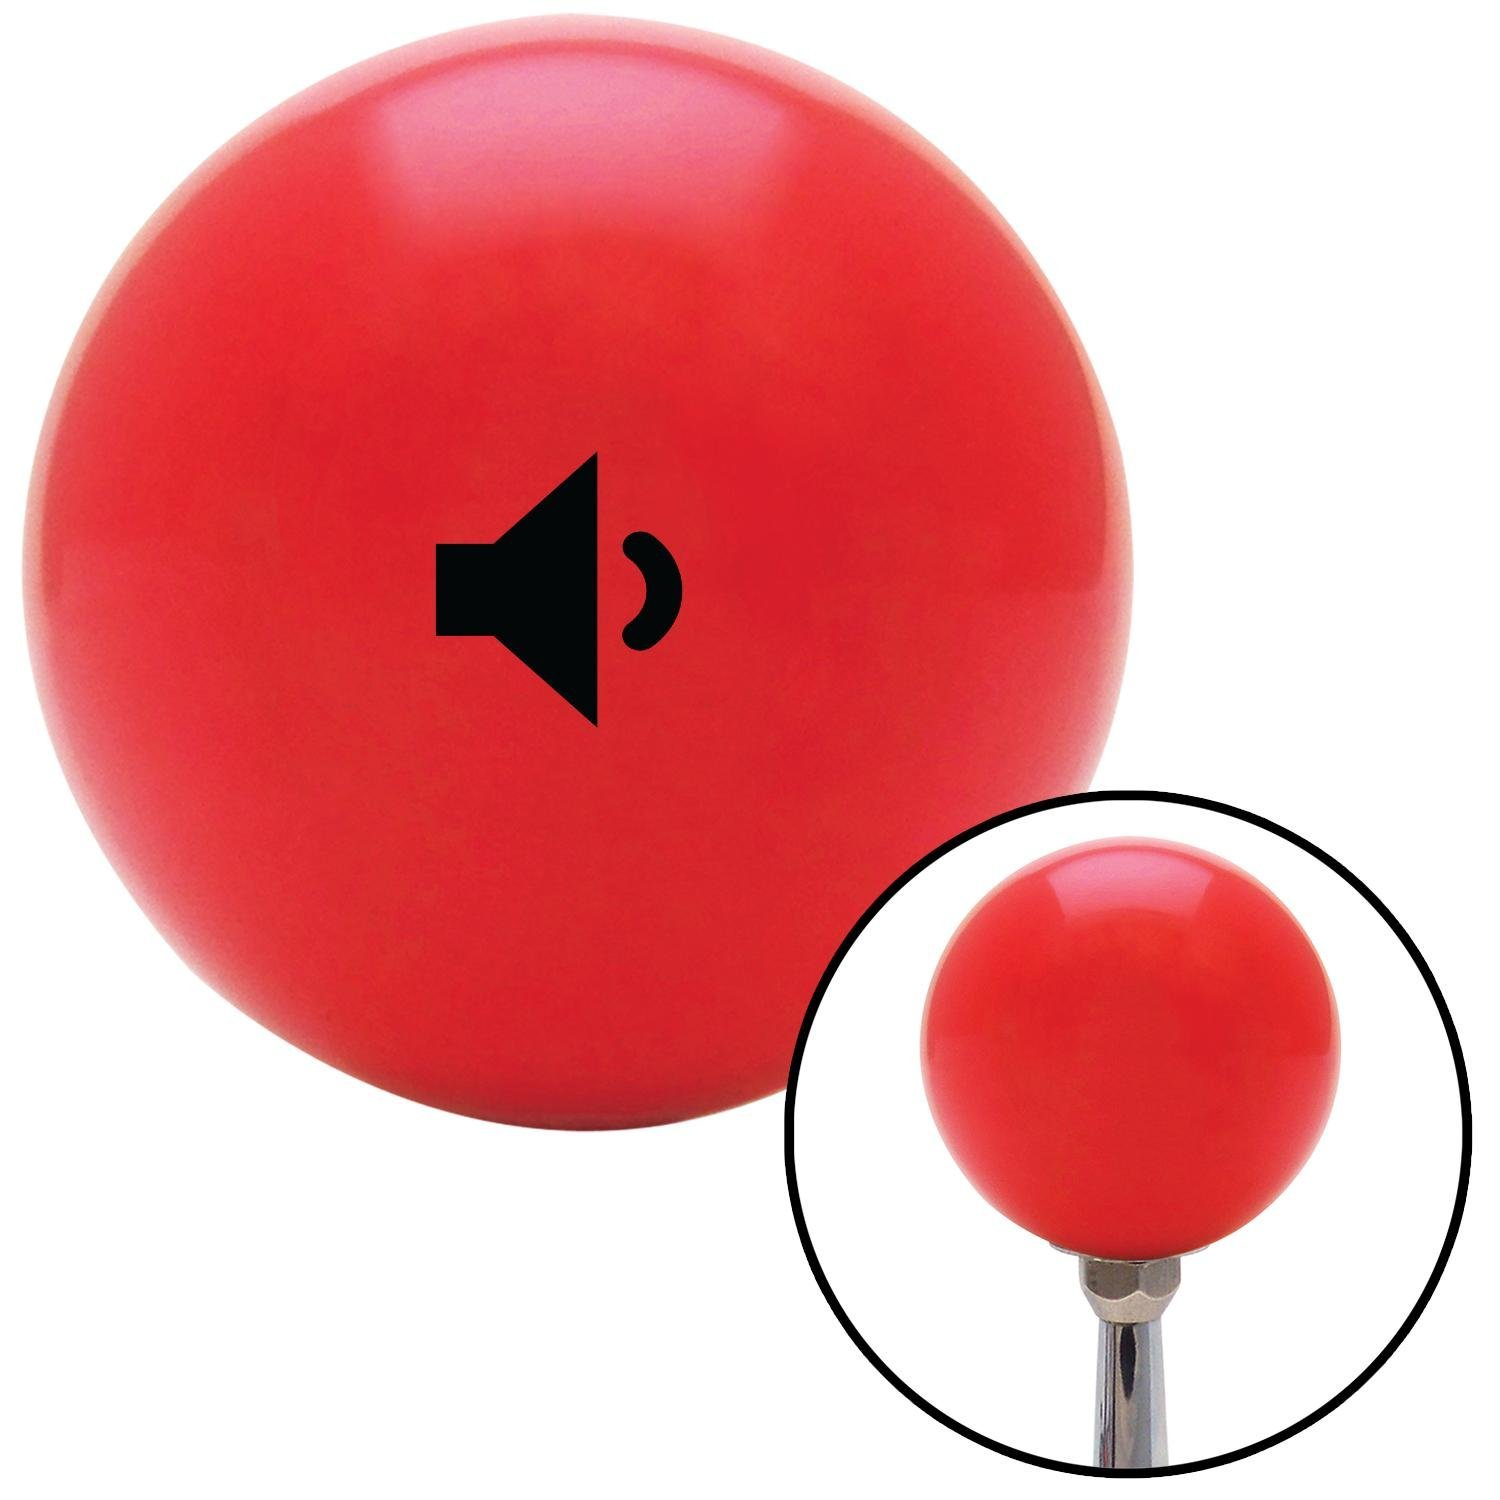 Black Speaker On Low Volume American Shifter 96938 Red Shift Knob with M16 x 1.5 Insert